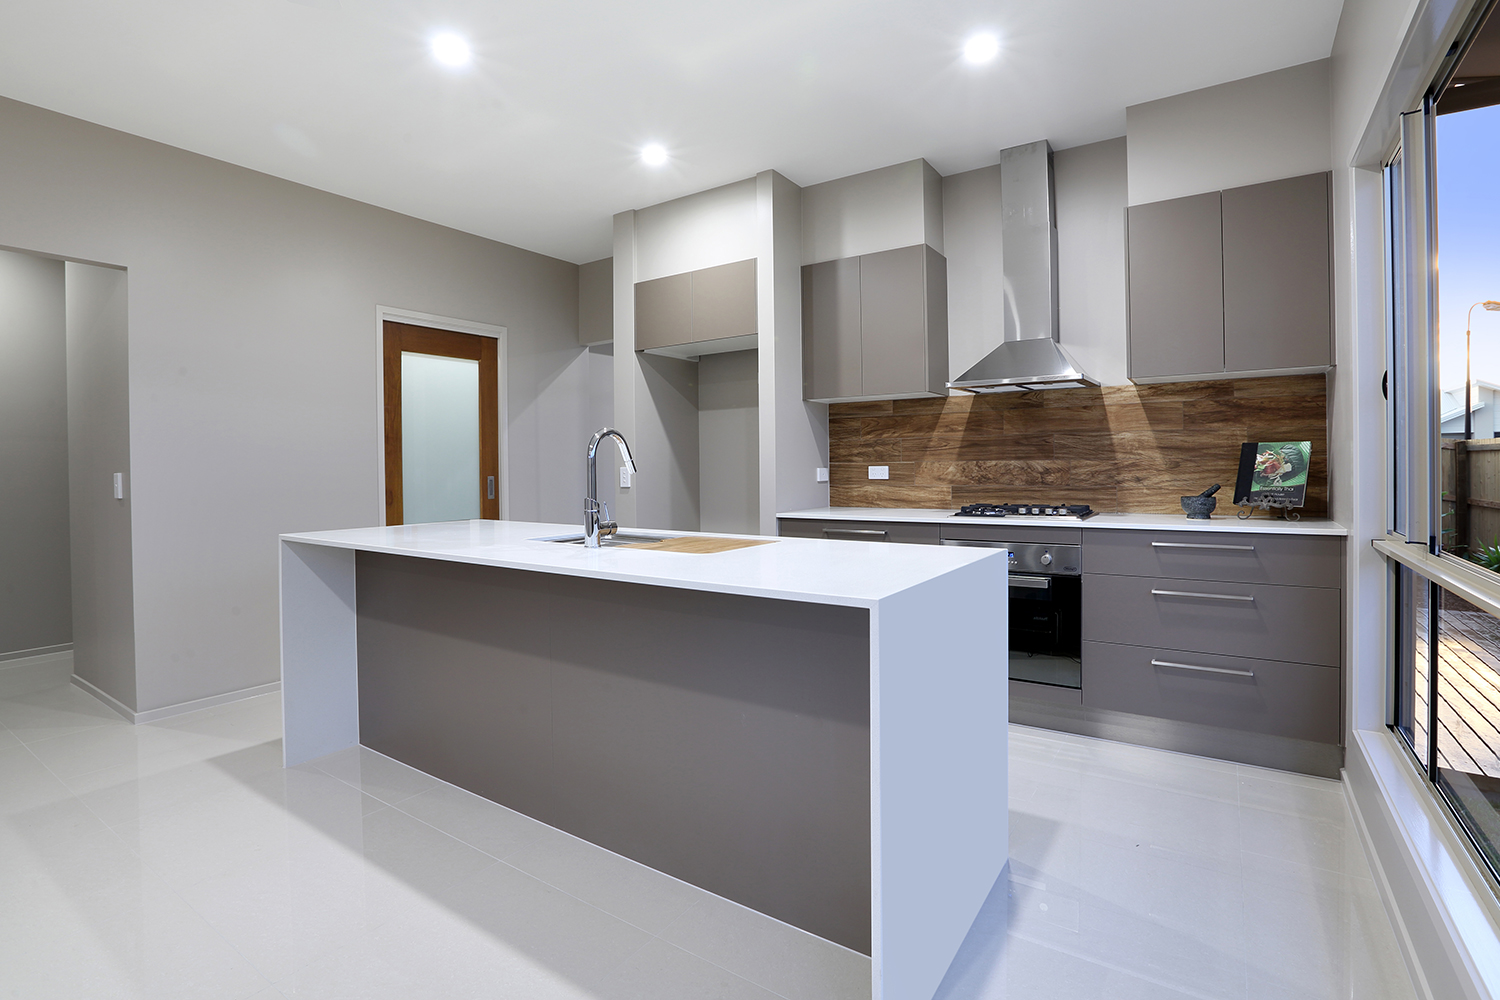 udconstruction-kitchen3.jpg